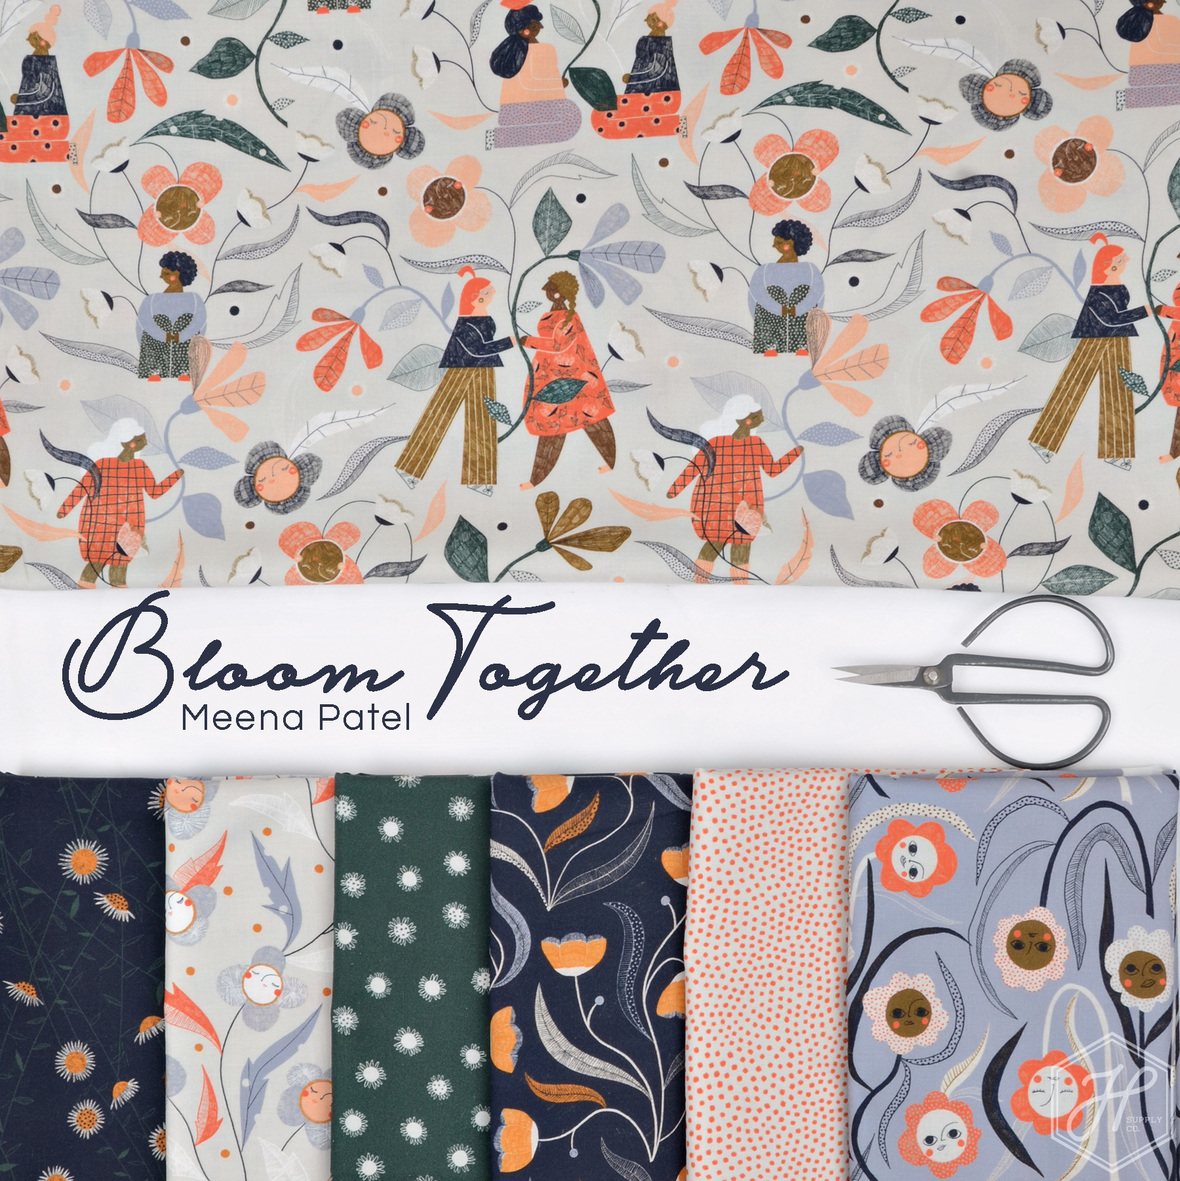 Bloom-Together-Meena-Patel-for-Cloud-9-at-Hawthorne-Supply-Co